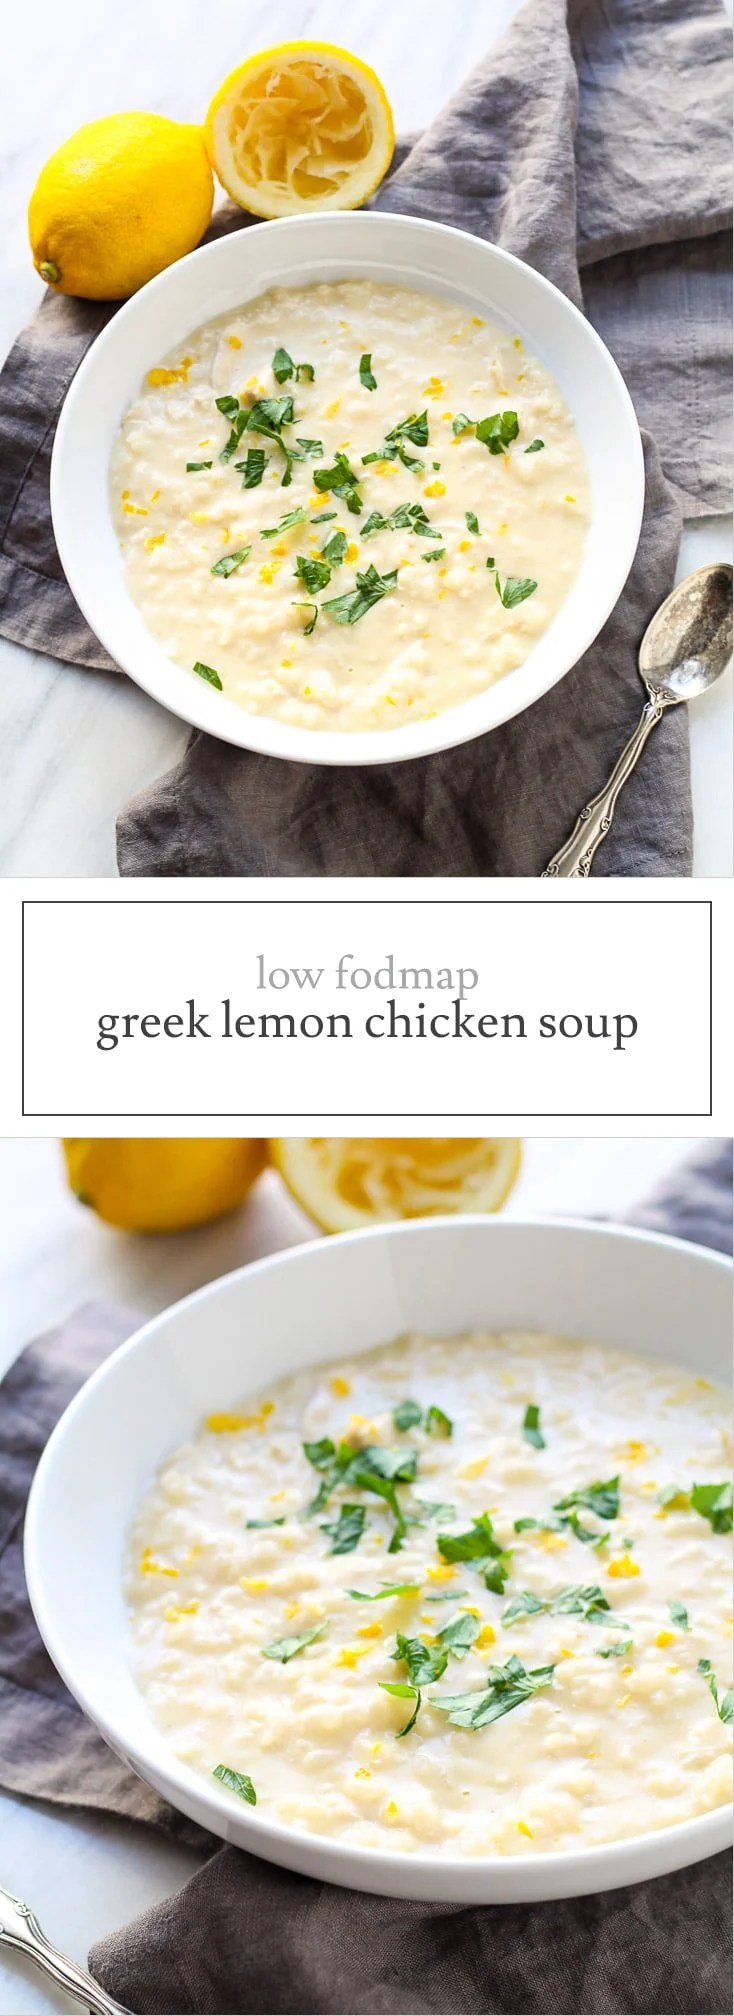 Creamy, comforting and oh-so-good, this Low FODMAP Greek Lemon Chicken Soup is a delicious way to warm up! It's also gluten free and dairy free.